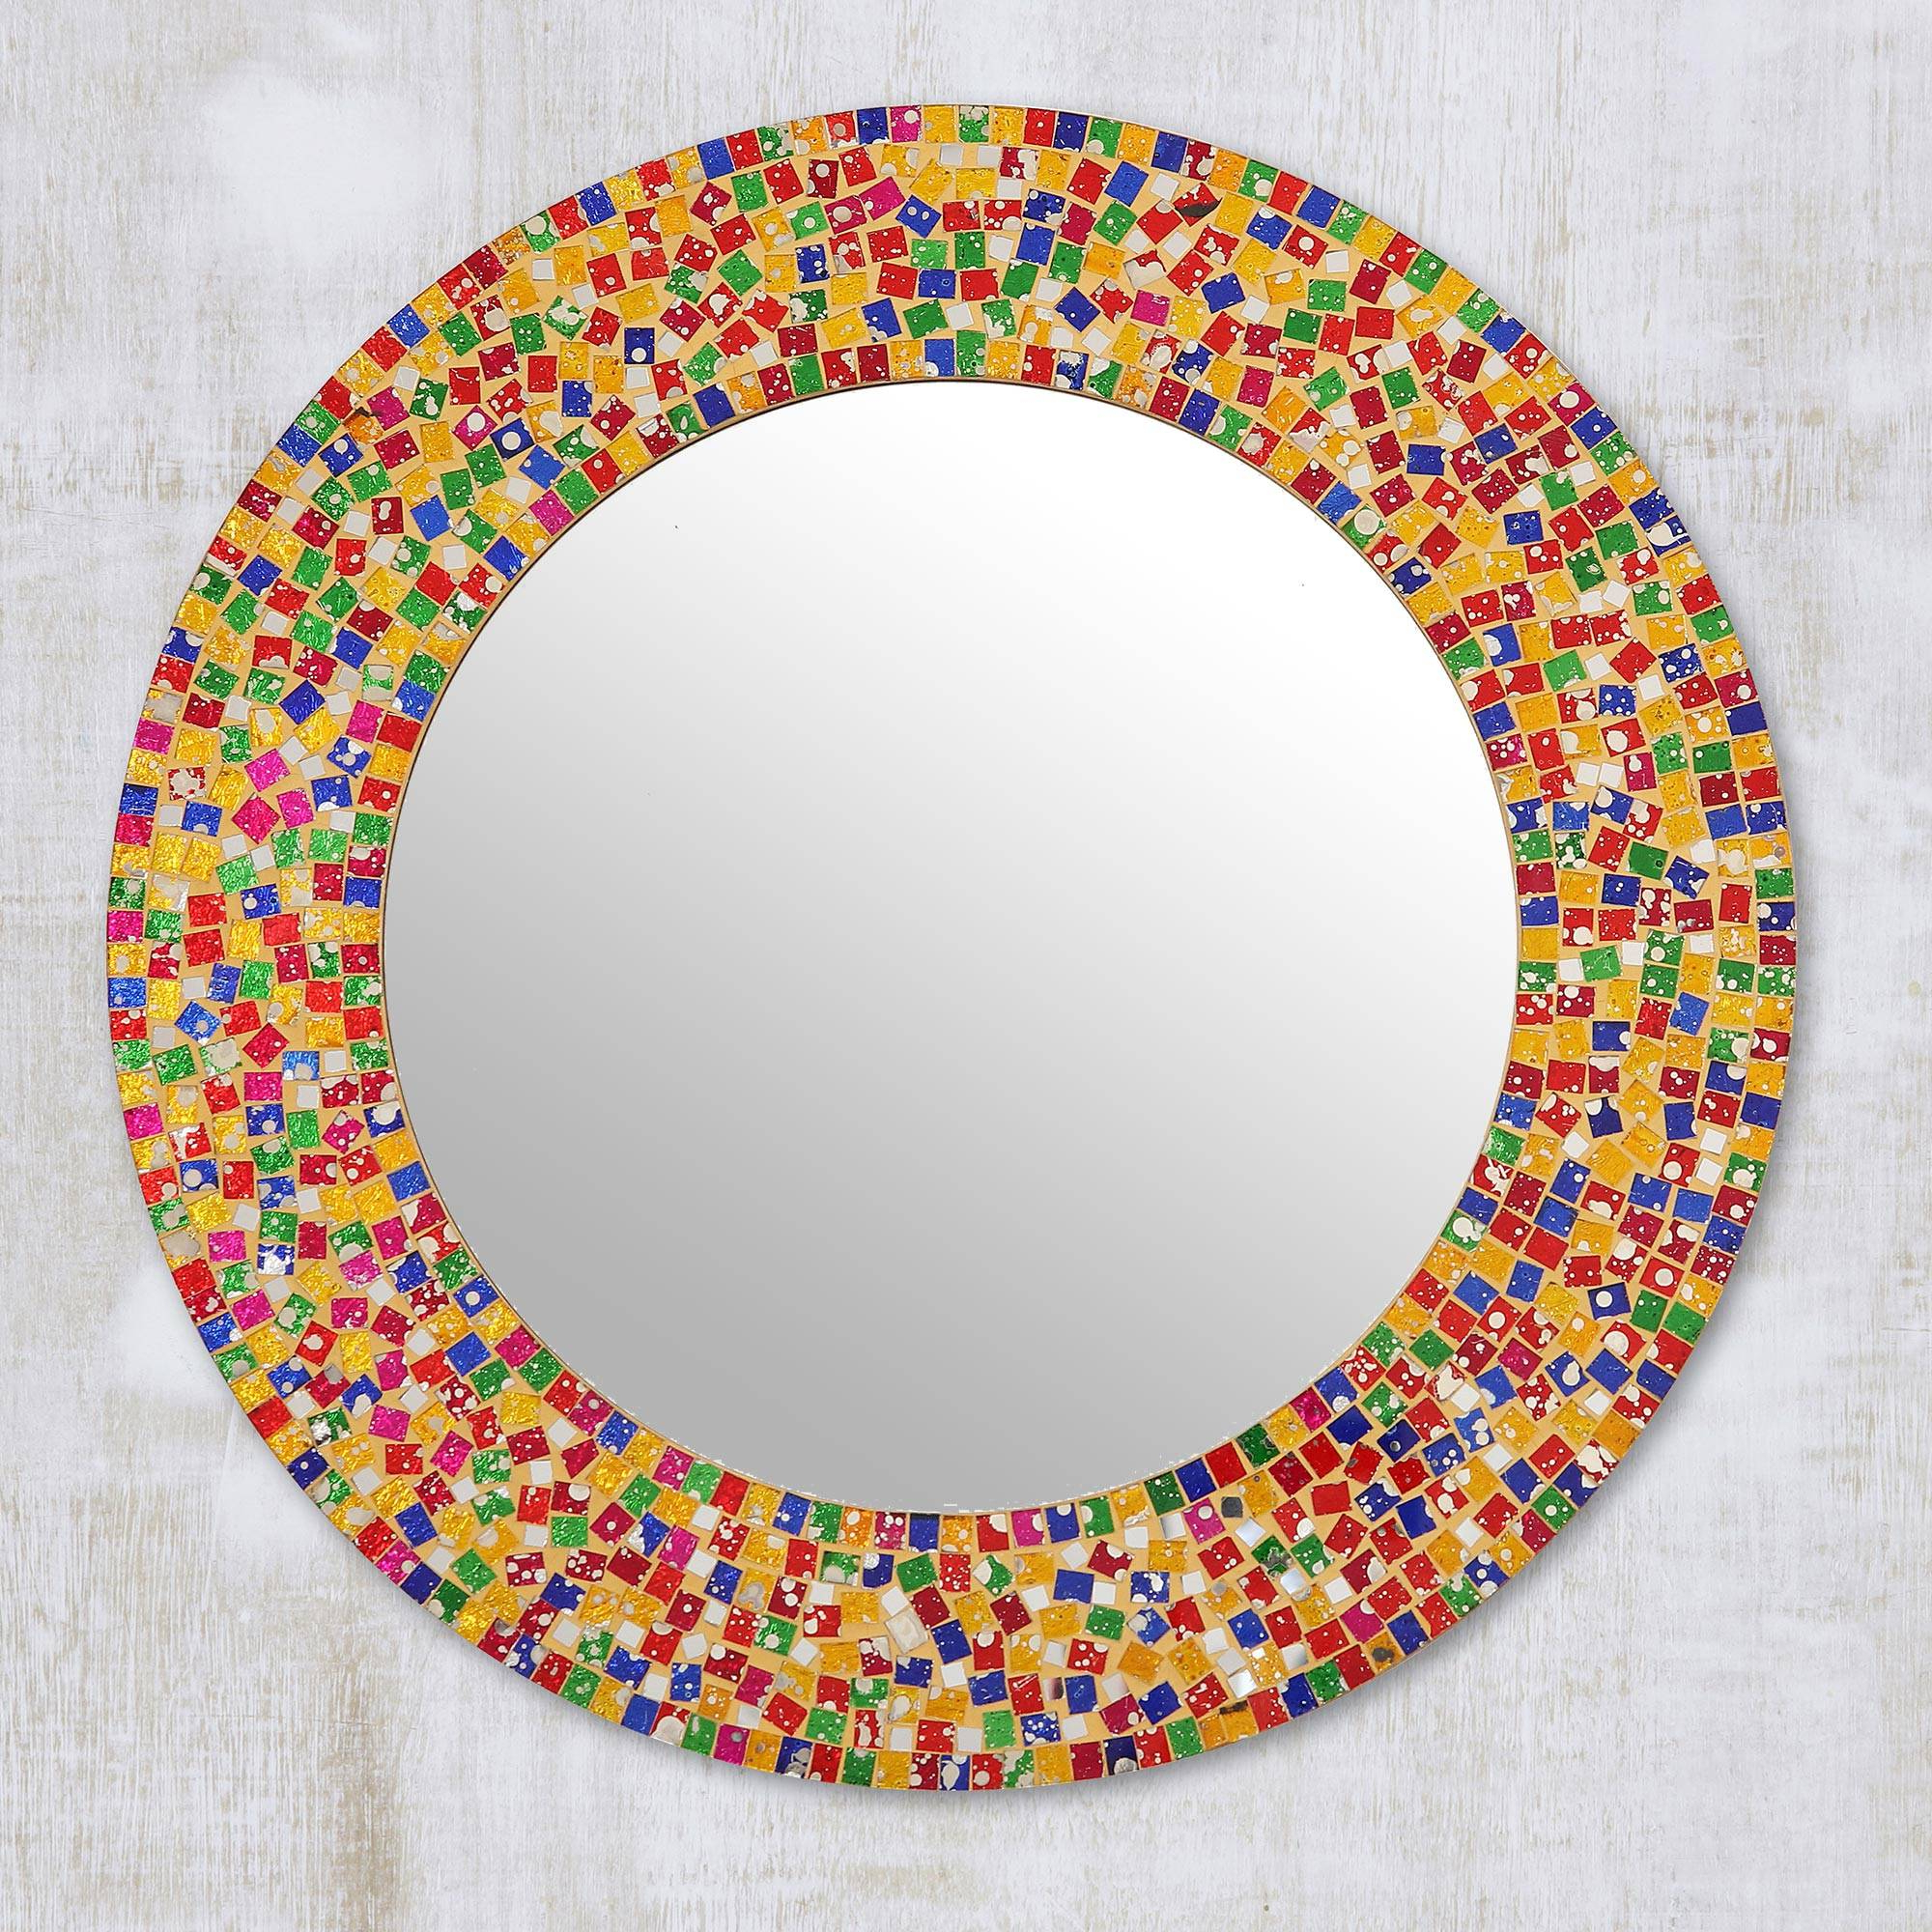 Best And Newest Round Colorful Glass Mosaic Wall Mirror From India, 'colorful Dazzle' Intended For Mosaic Wall Mirrors (View 11 of 20)